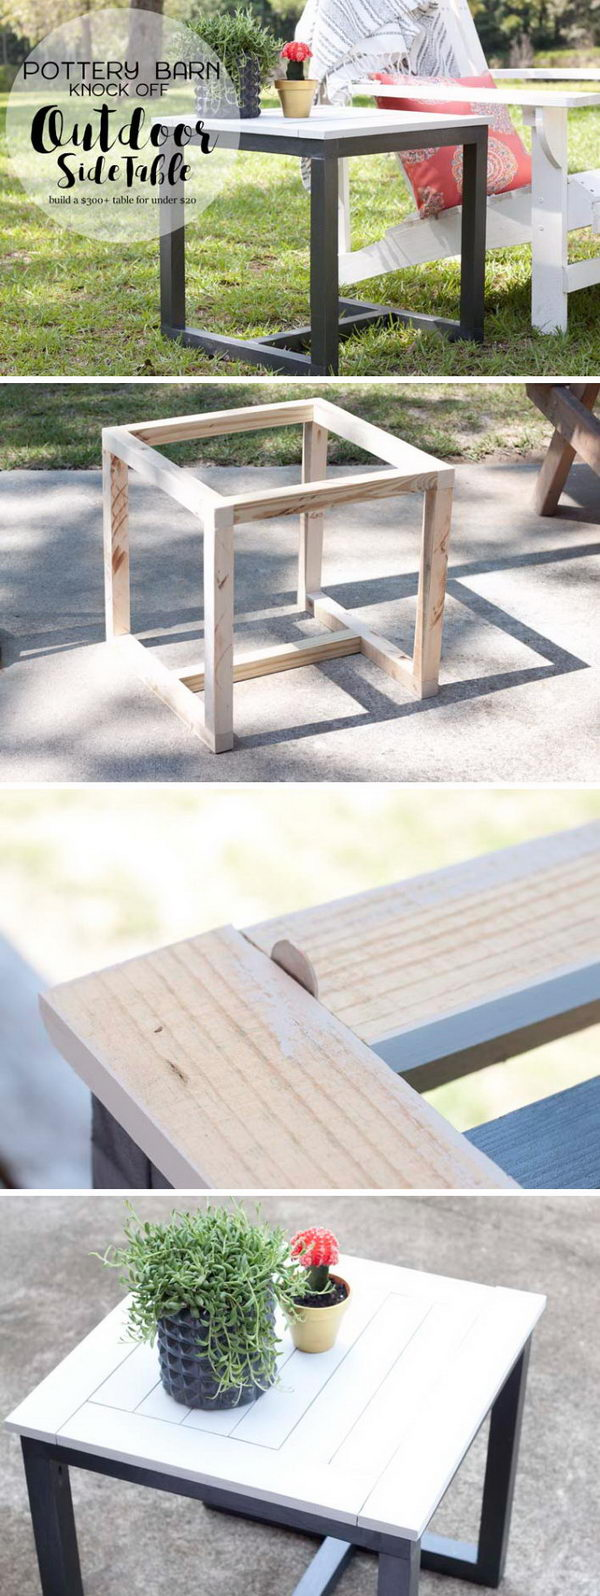 awesome diy side table ideas for outdoors and indoors hative tutorials outdoor accent pottery barn knockoff wide nightstand with drawers farmhouse dining room set unique cabinet